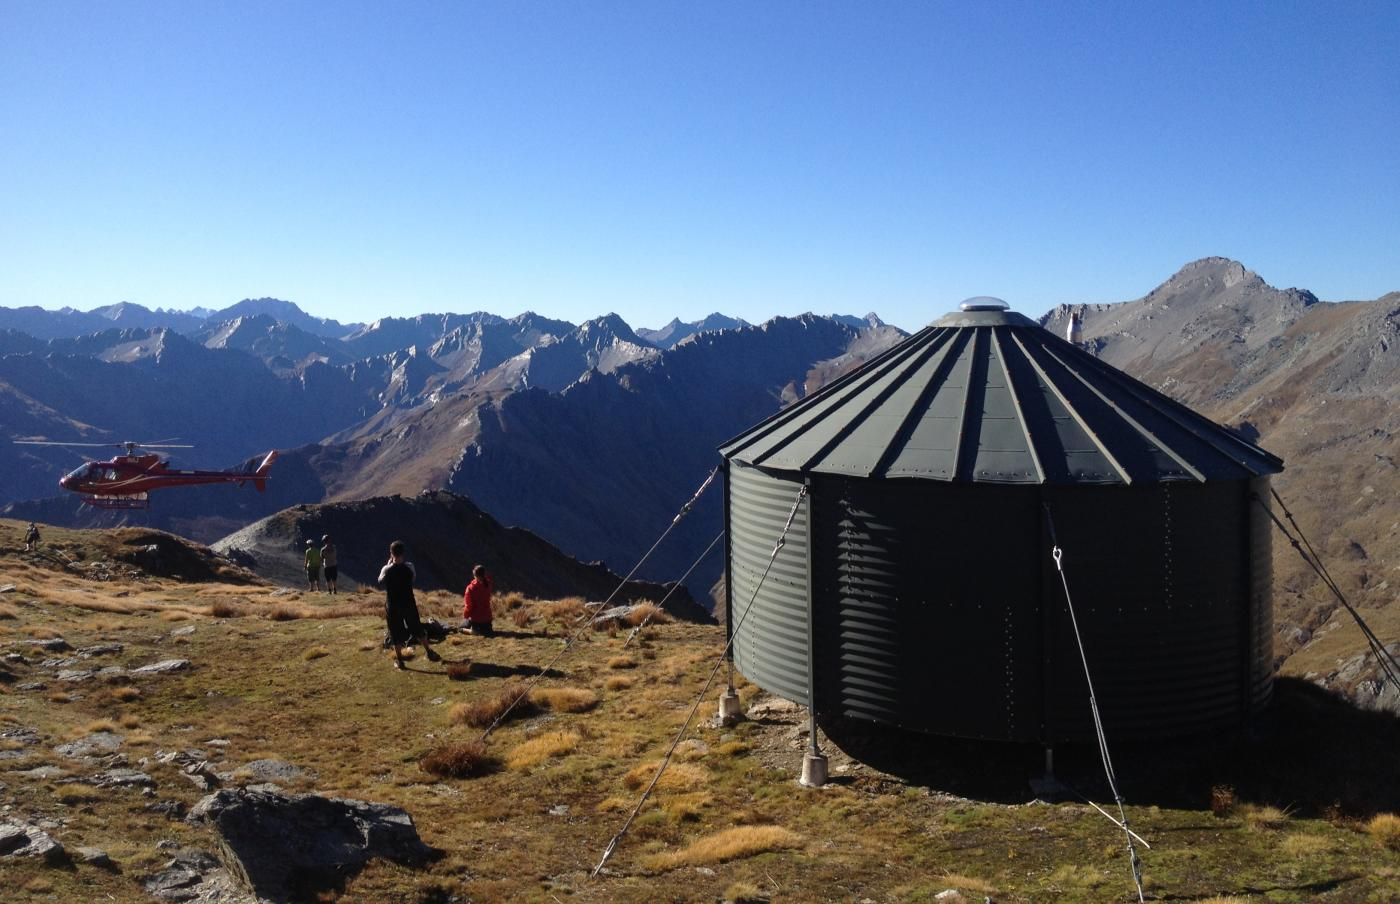 Helicopter access only to Mountainhut